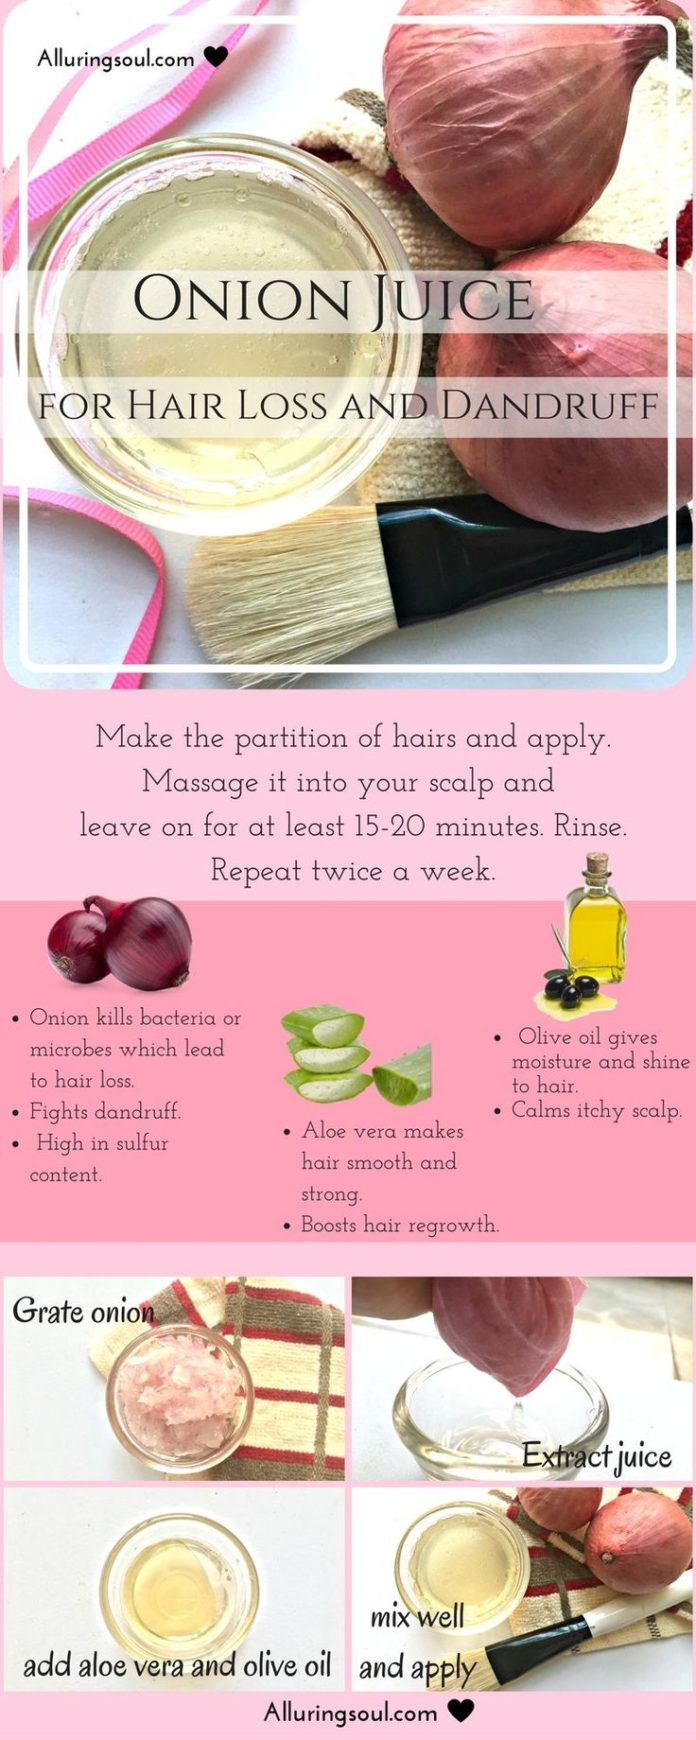 how to make onion juice for hair loss